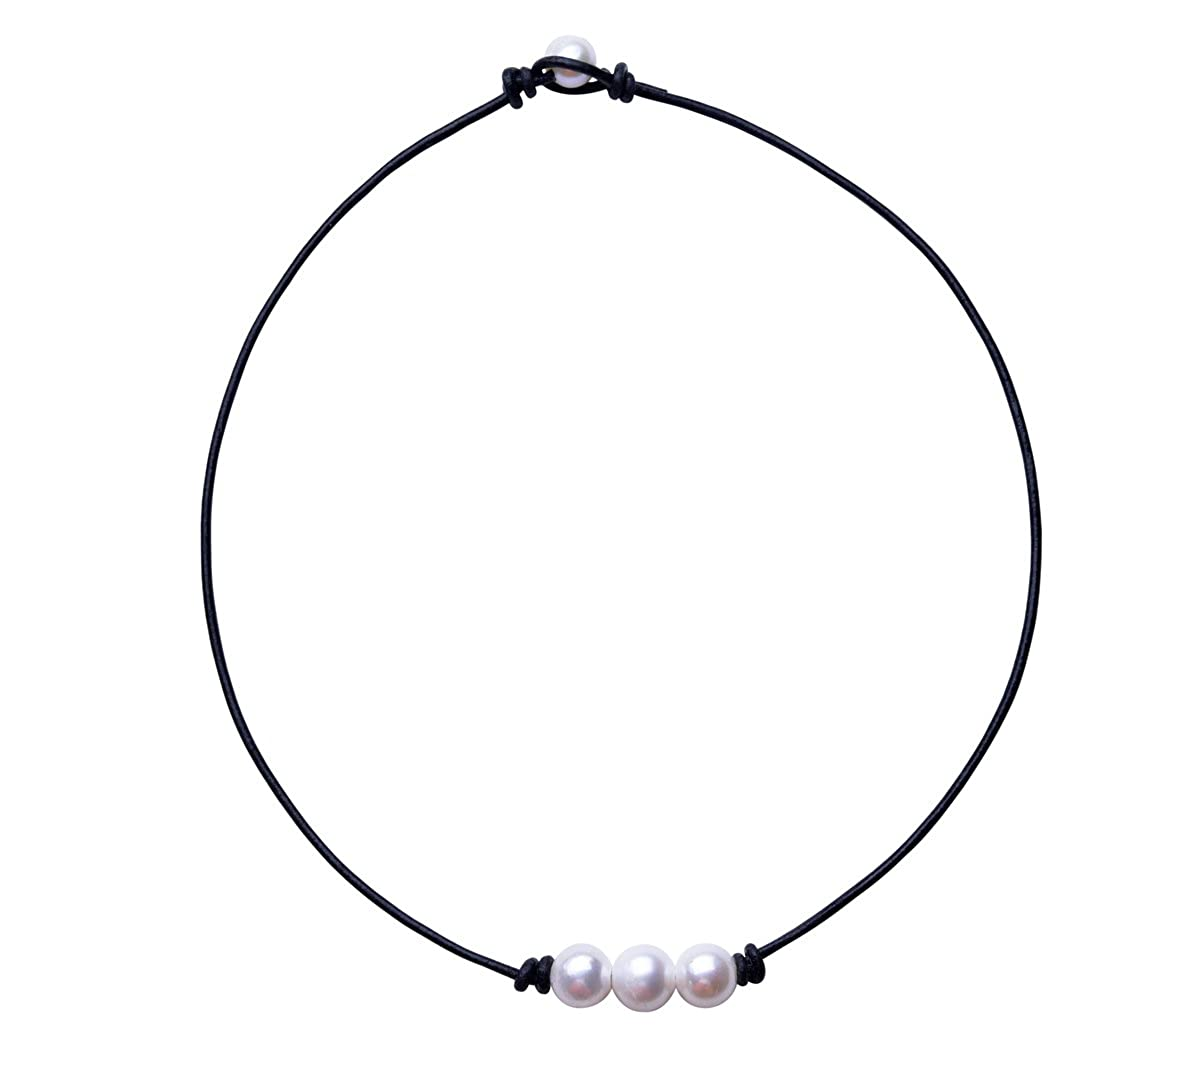 465fe63cb69b3 Amazon.com: The Feeling 3 White Pearl Bead Choker Necklace Knotted ...